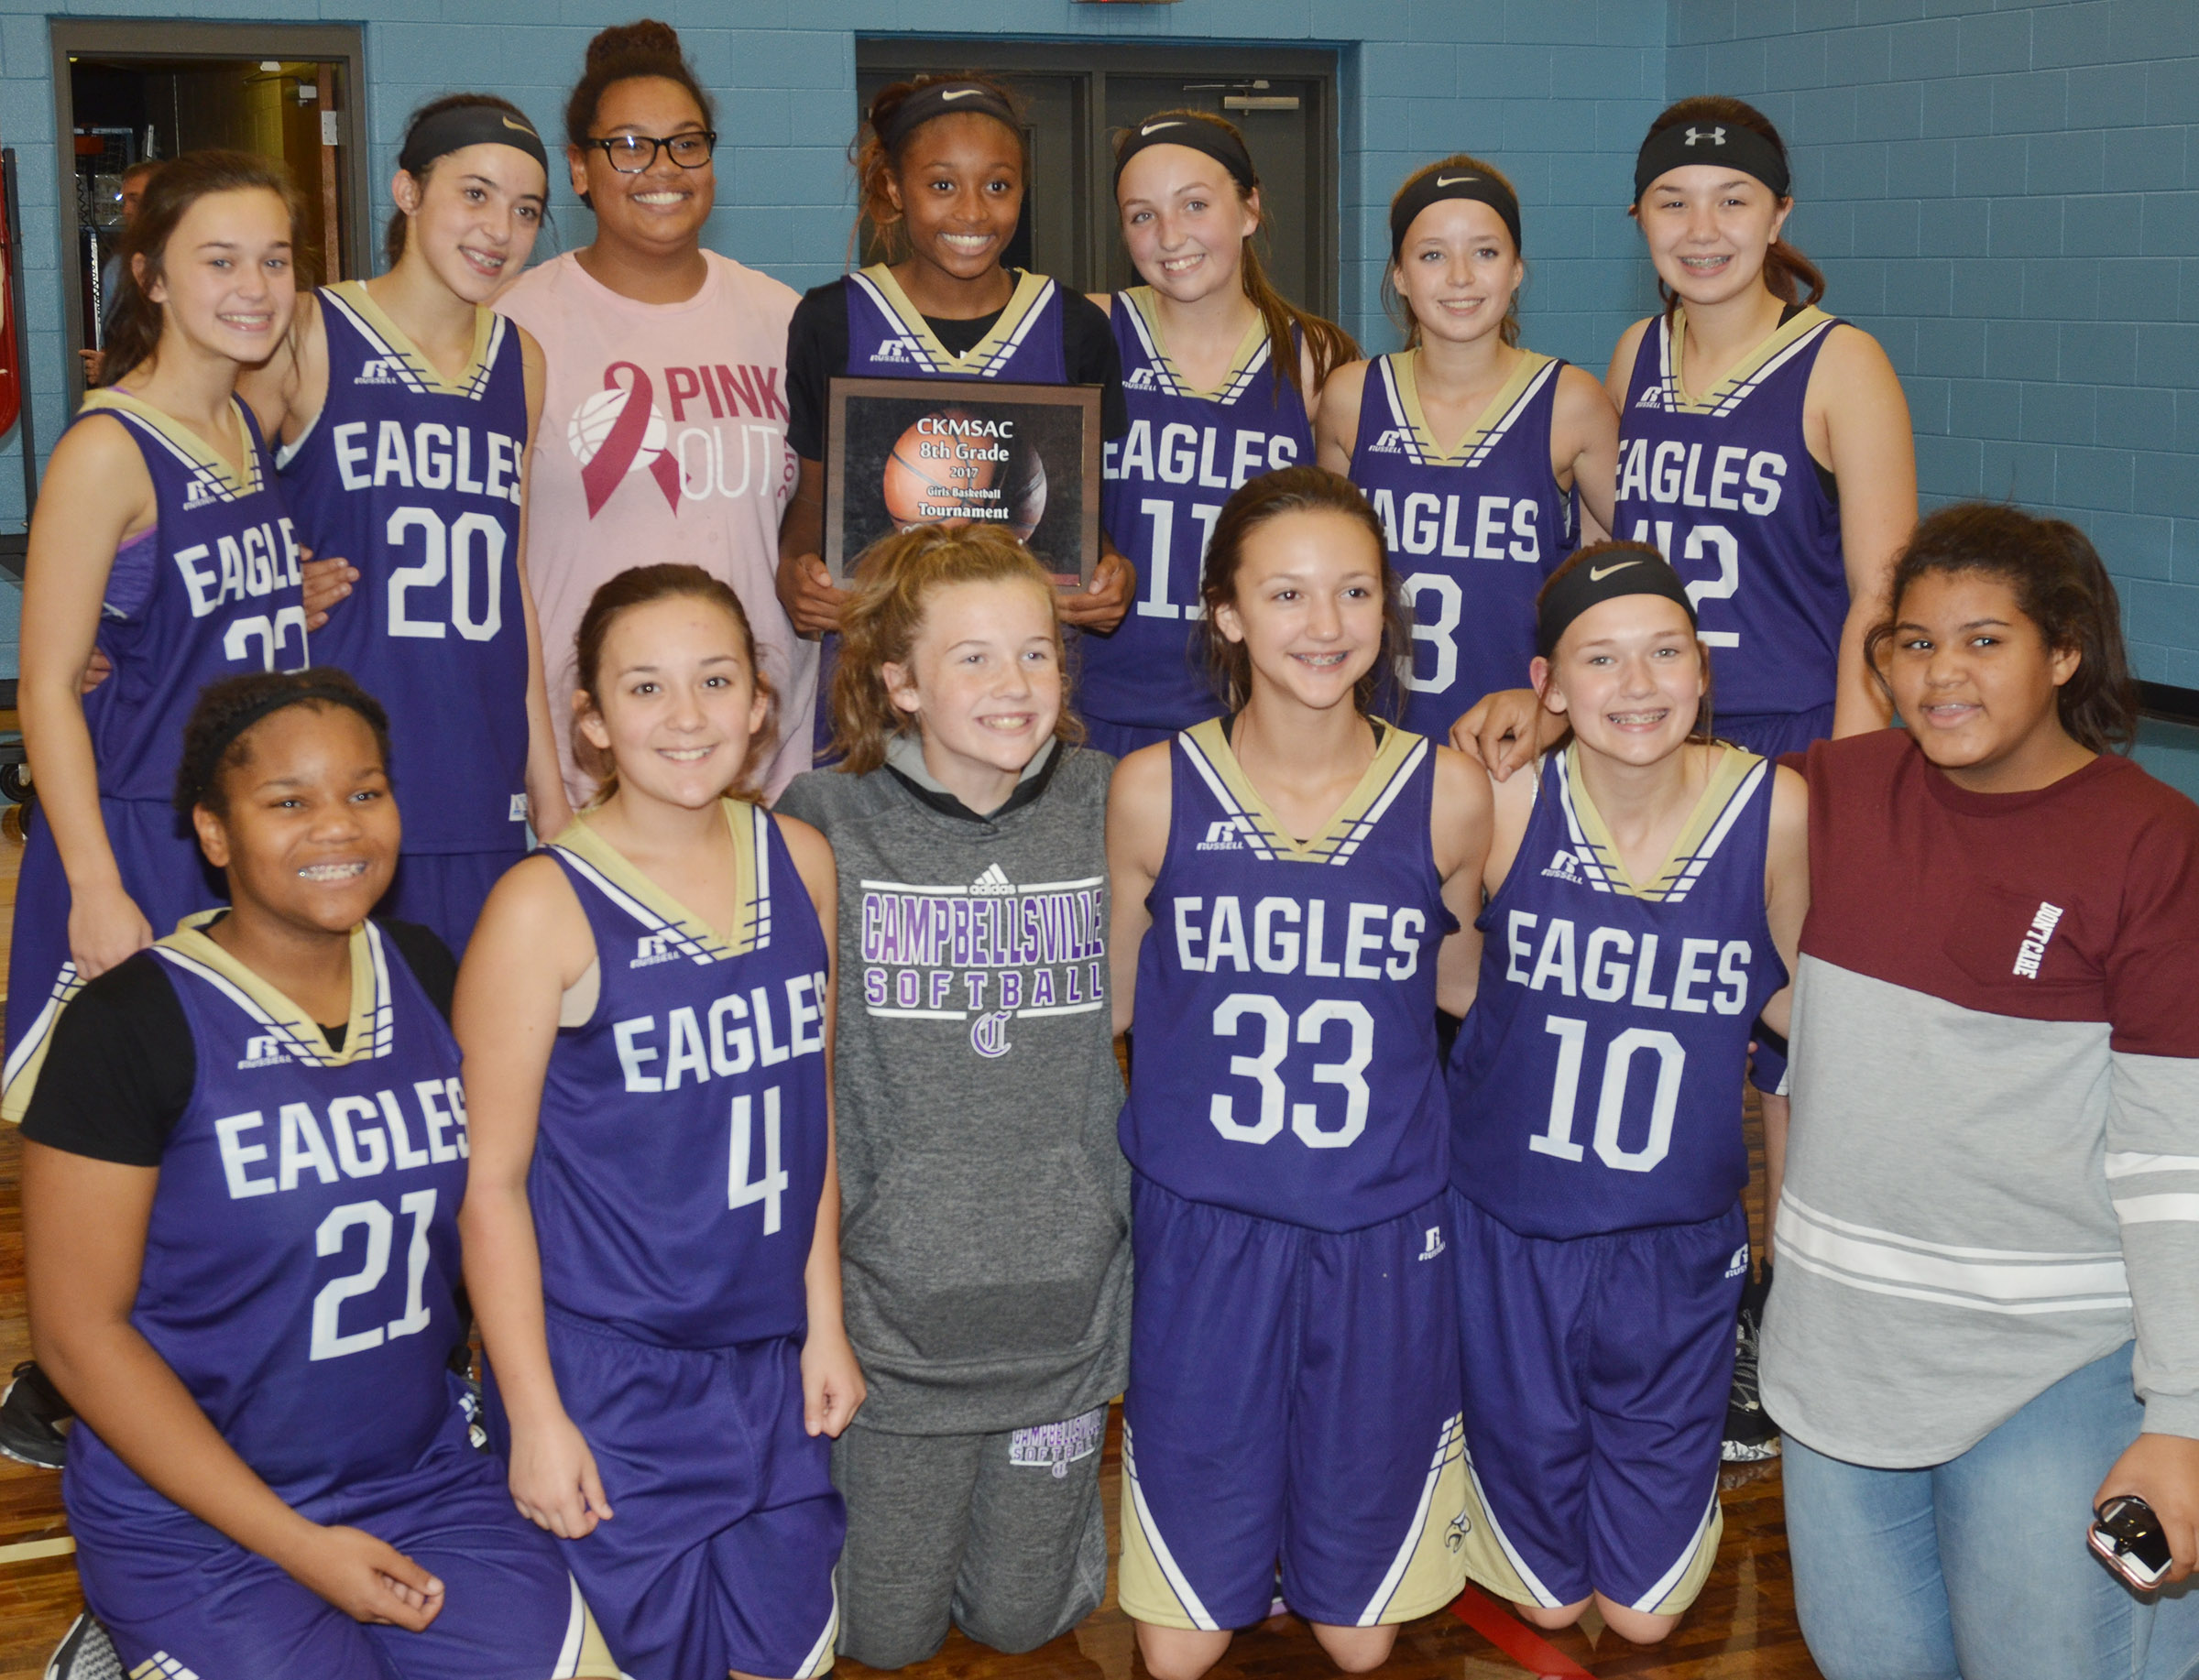 Campbellsville Middle School girls' eighth-grade basketball team recently won its first Central Kentucky Middle School Athletic Conference tournament championship title in 20 years. From left, front, are seventh-graders Antaya Epps, Briana Davis, Dakota Slone, Bri Hayes, BreAnna Humphress and Asia Barbour. Back, eighth-graders Tayler Thompson, Kaylyn Smith, Brae Washington, Bri Gowdy, Lainey Watson, Rylee Petett and Olivia Fields.